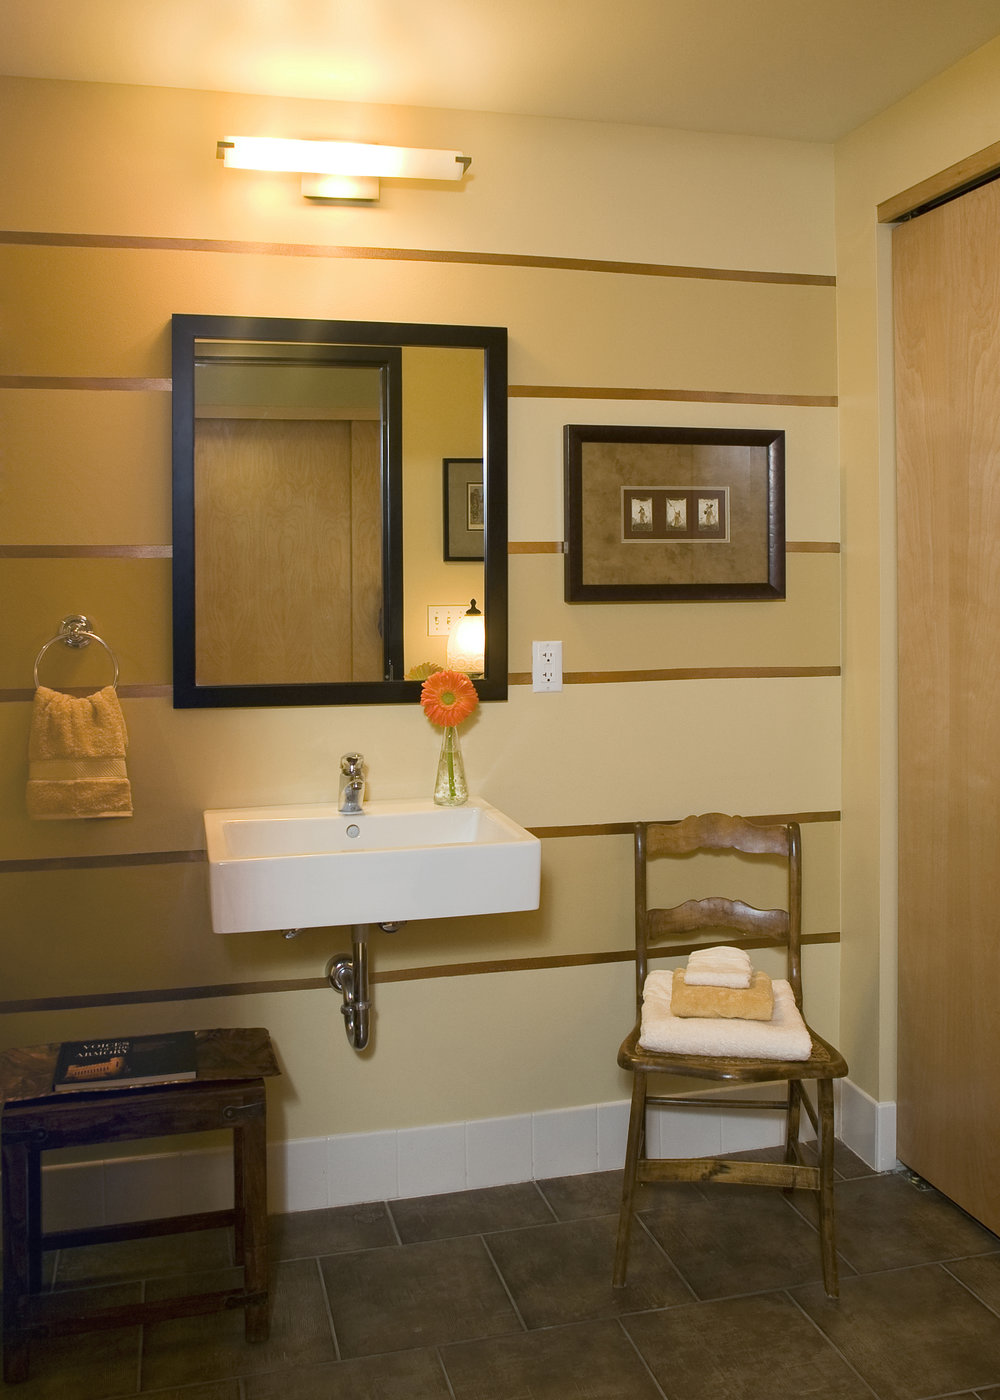 bathroom1_crop.jpg